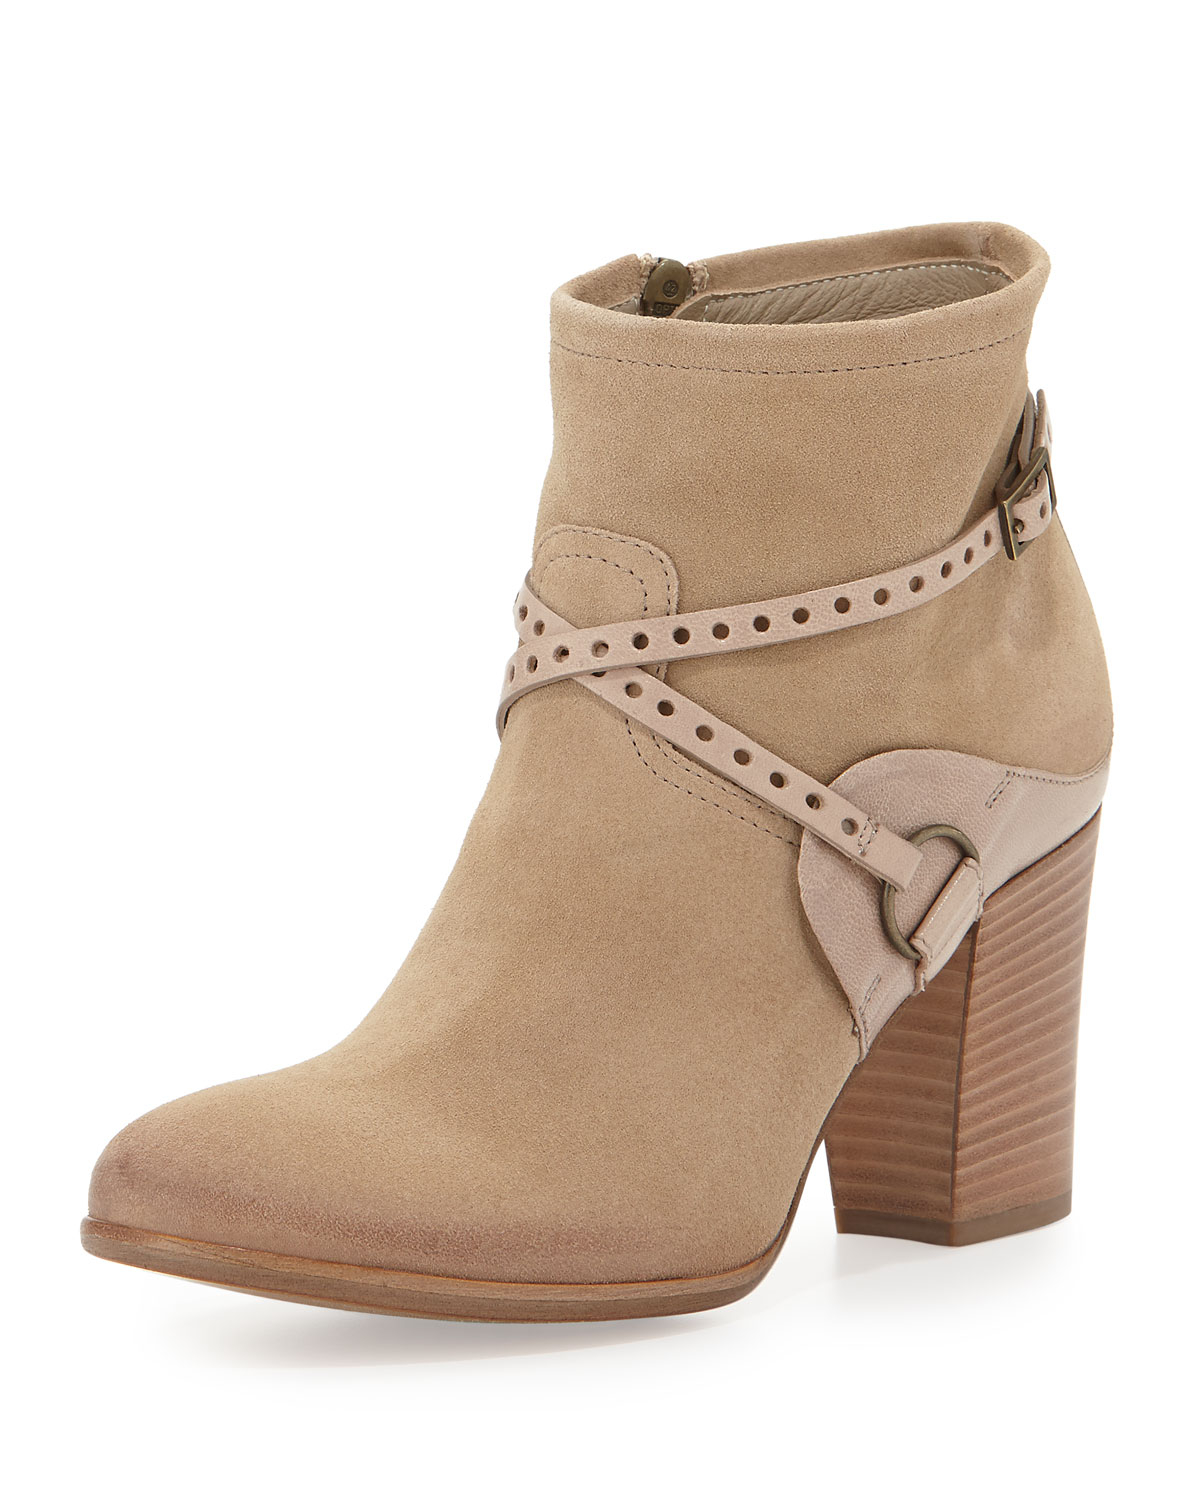 8a4fdd2ea4d Lyst - Alberto Fermani Follina Suede Ankle Boot in Natural